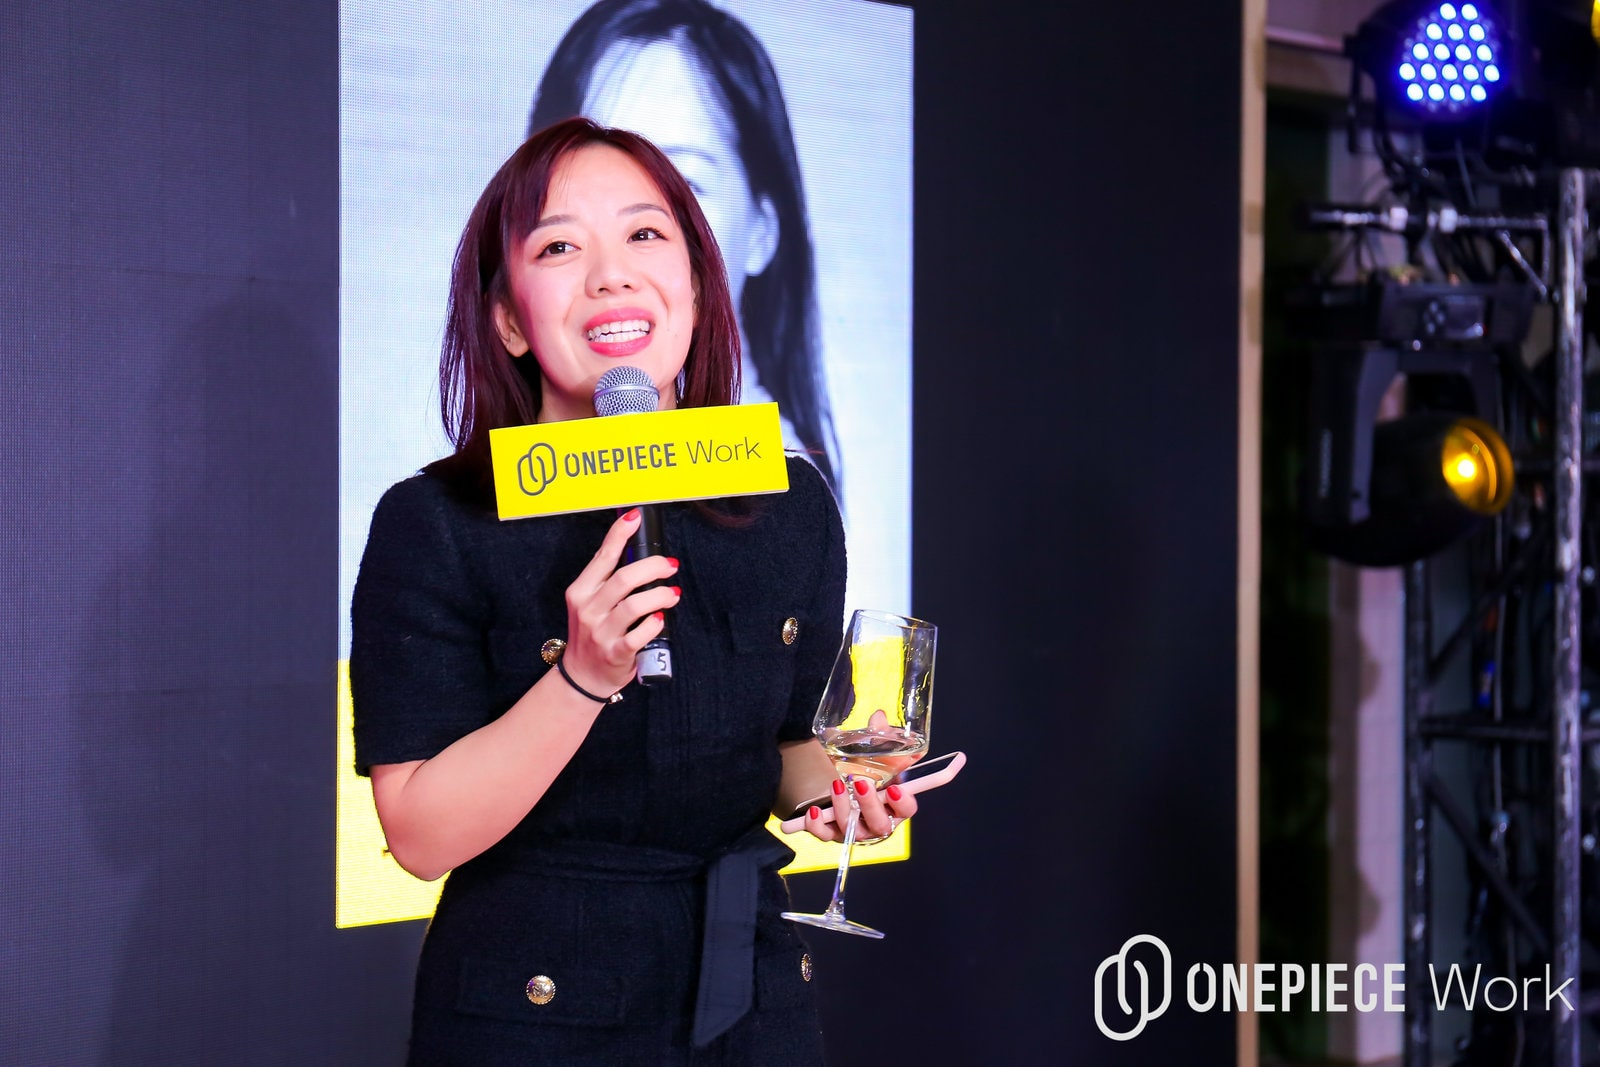 A coworking founder, Vickey Li, speaking at a coworking event.